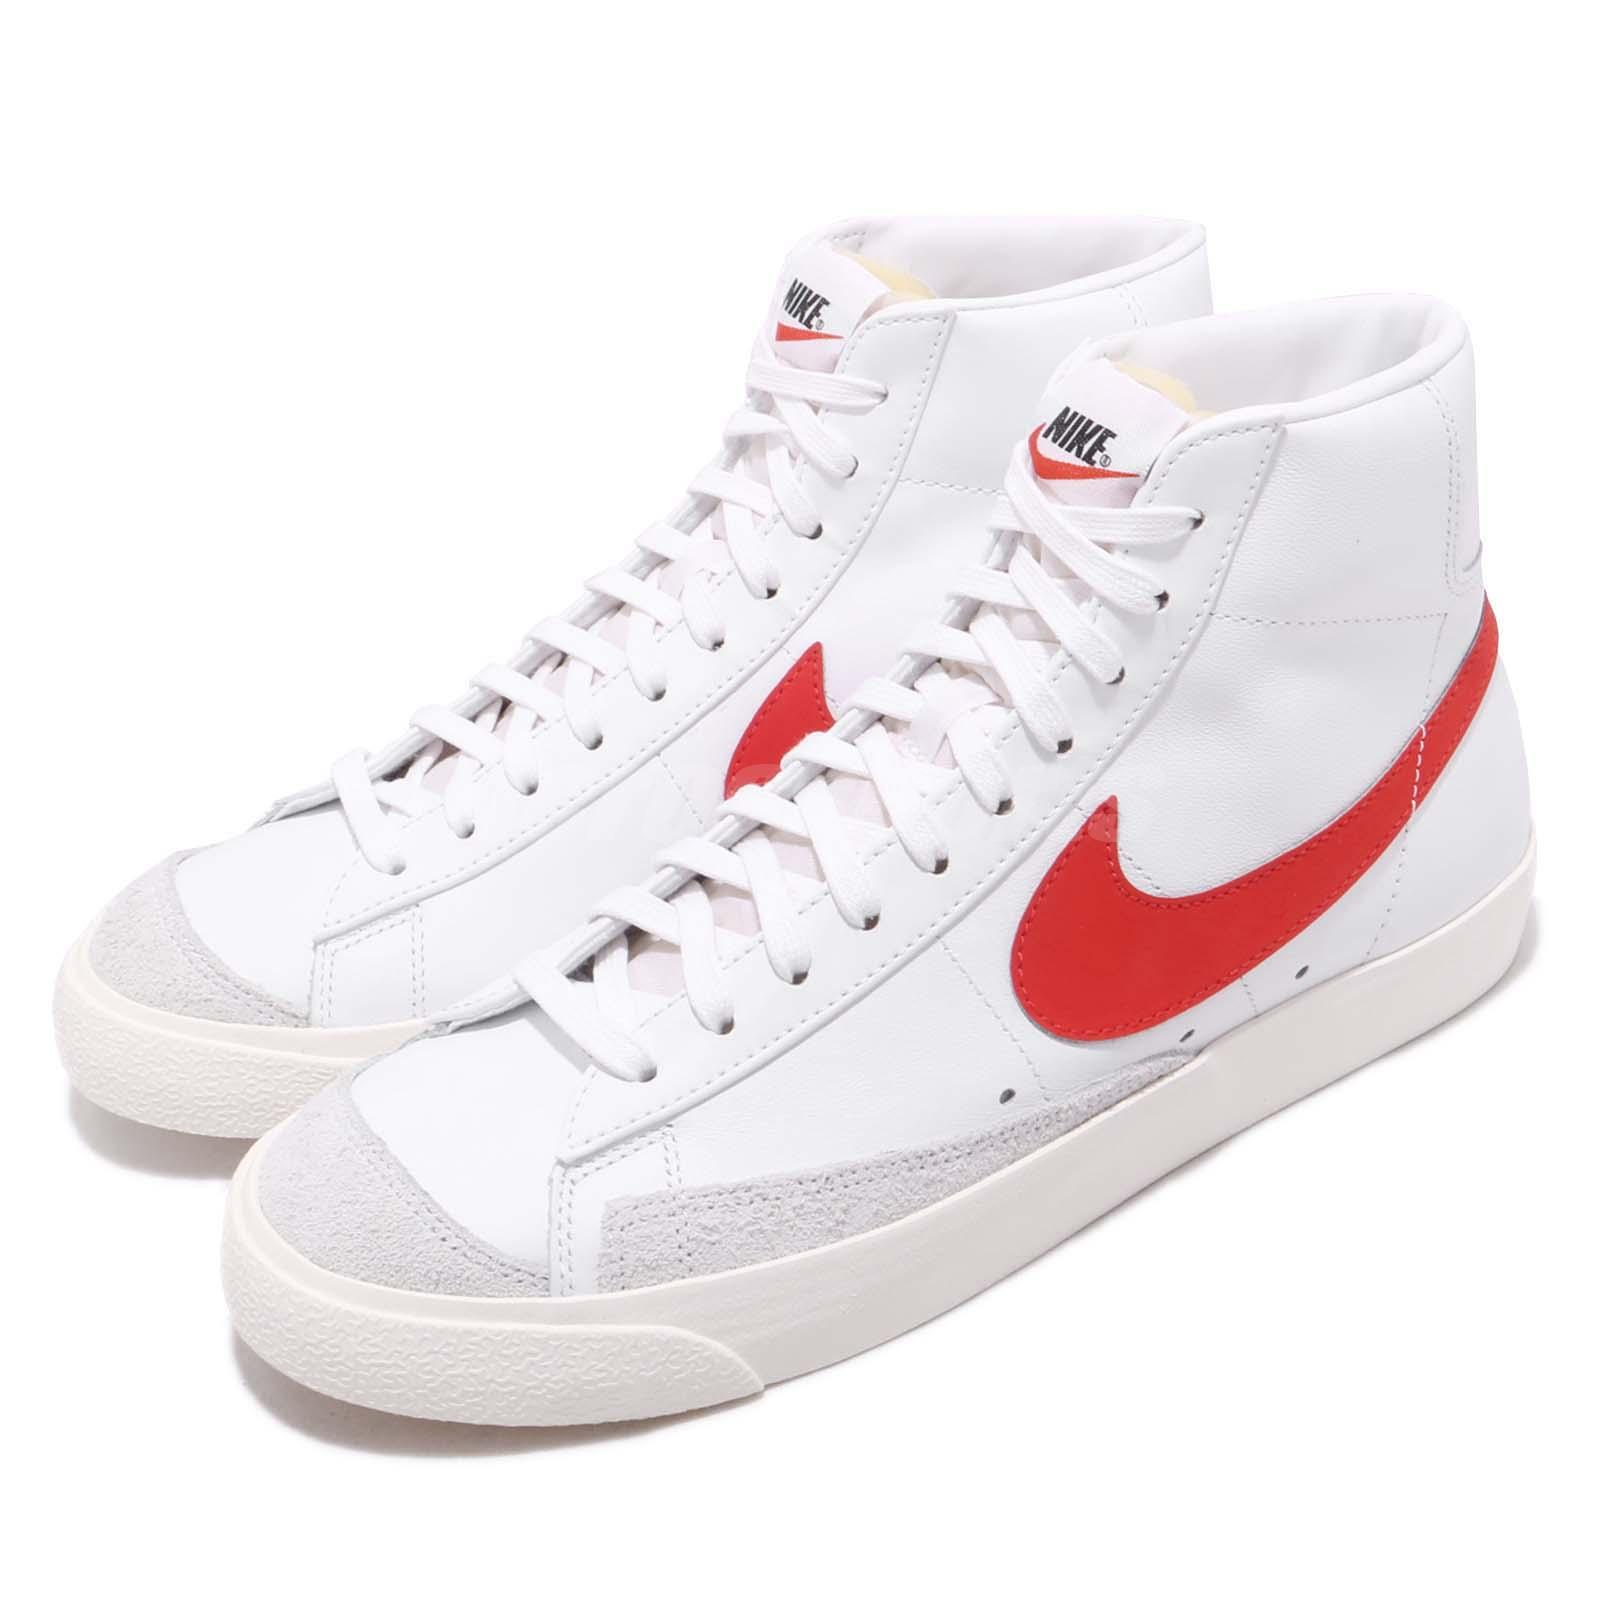 online store 968ef 7798b Details about Nike Blazer Mid 77 VNTG White Habanero Red Vintage Style Mens  Shoes BQ6806-600